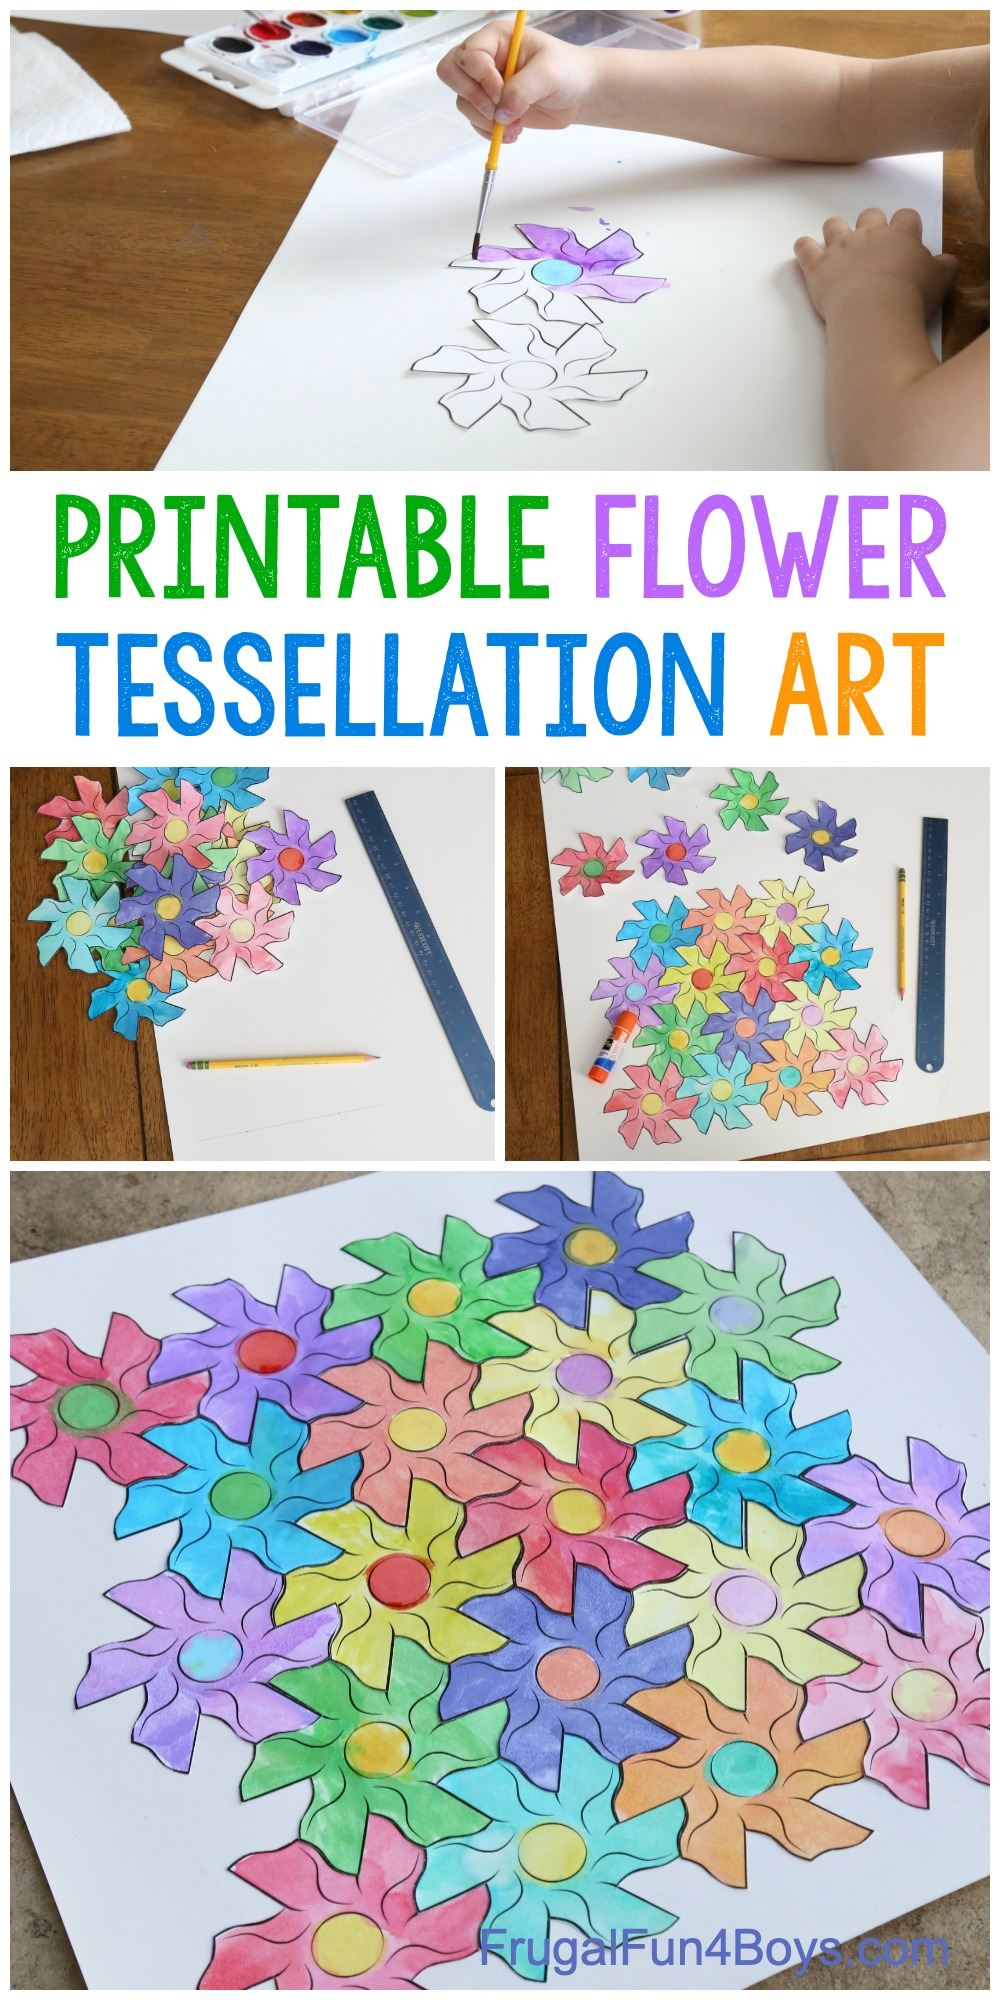 Flower Tessellation Activity - Printable Template